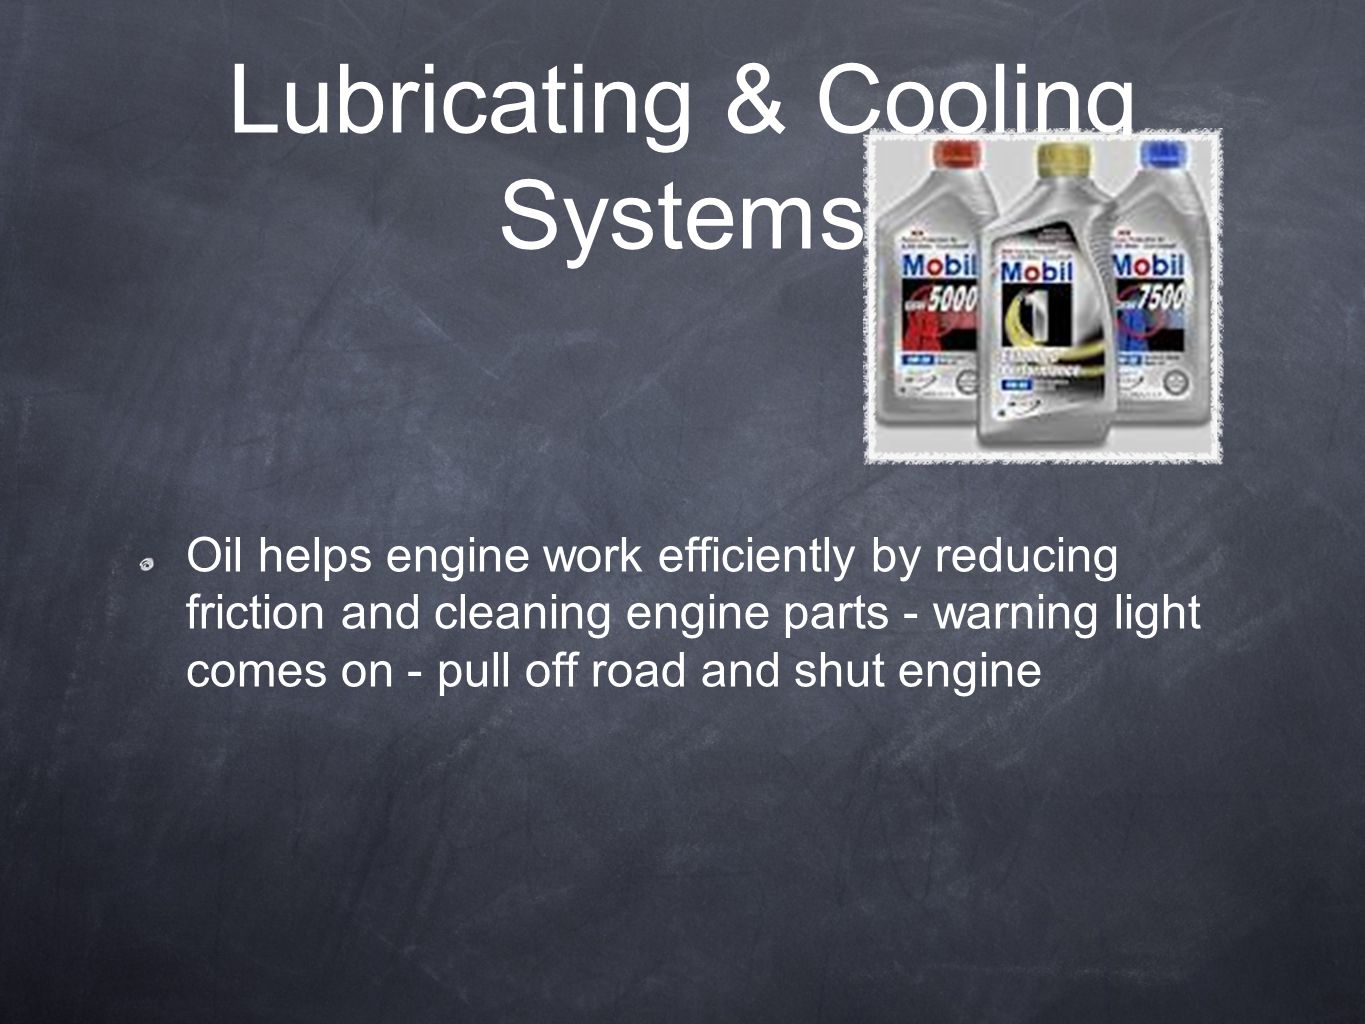 Lubricating & Cooling Systems